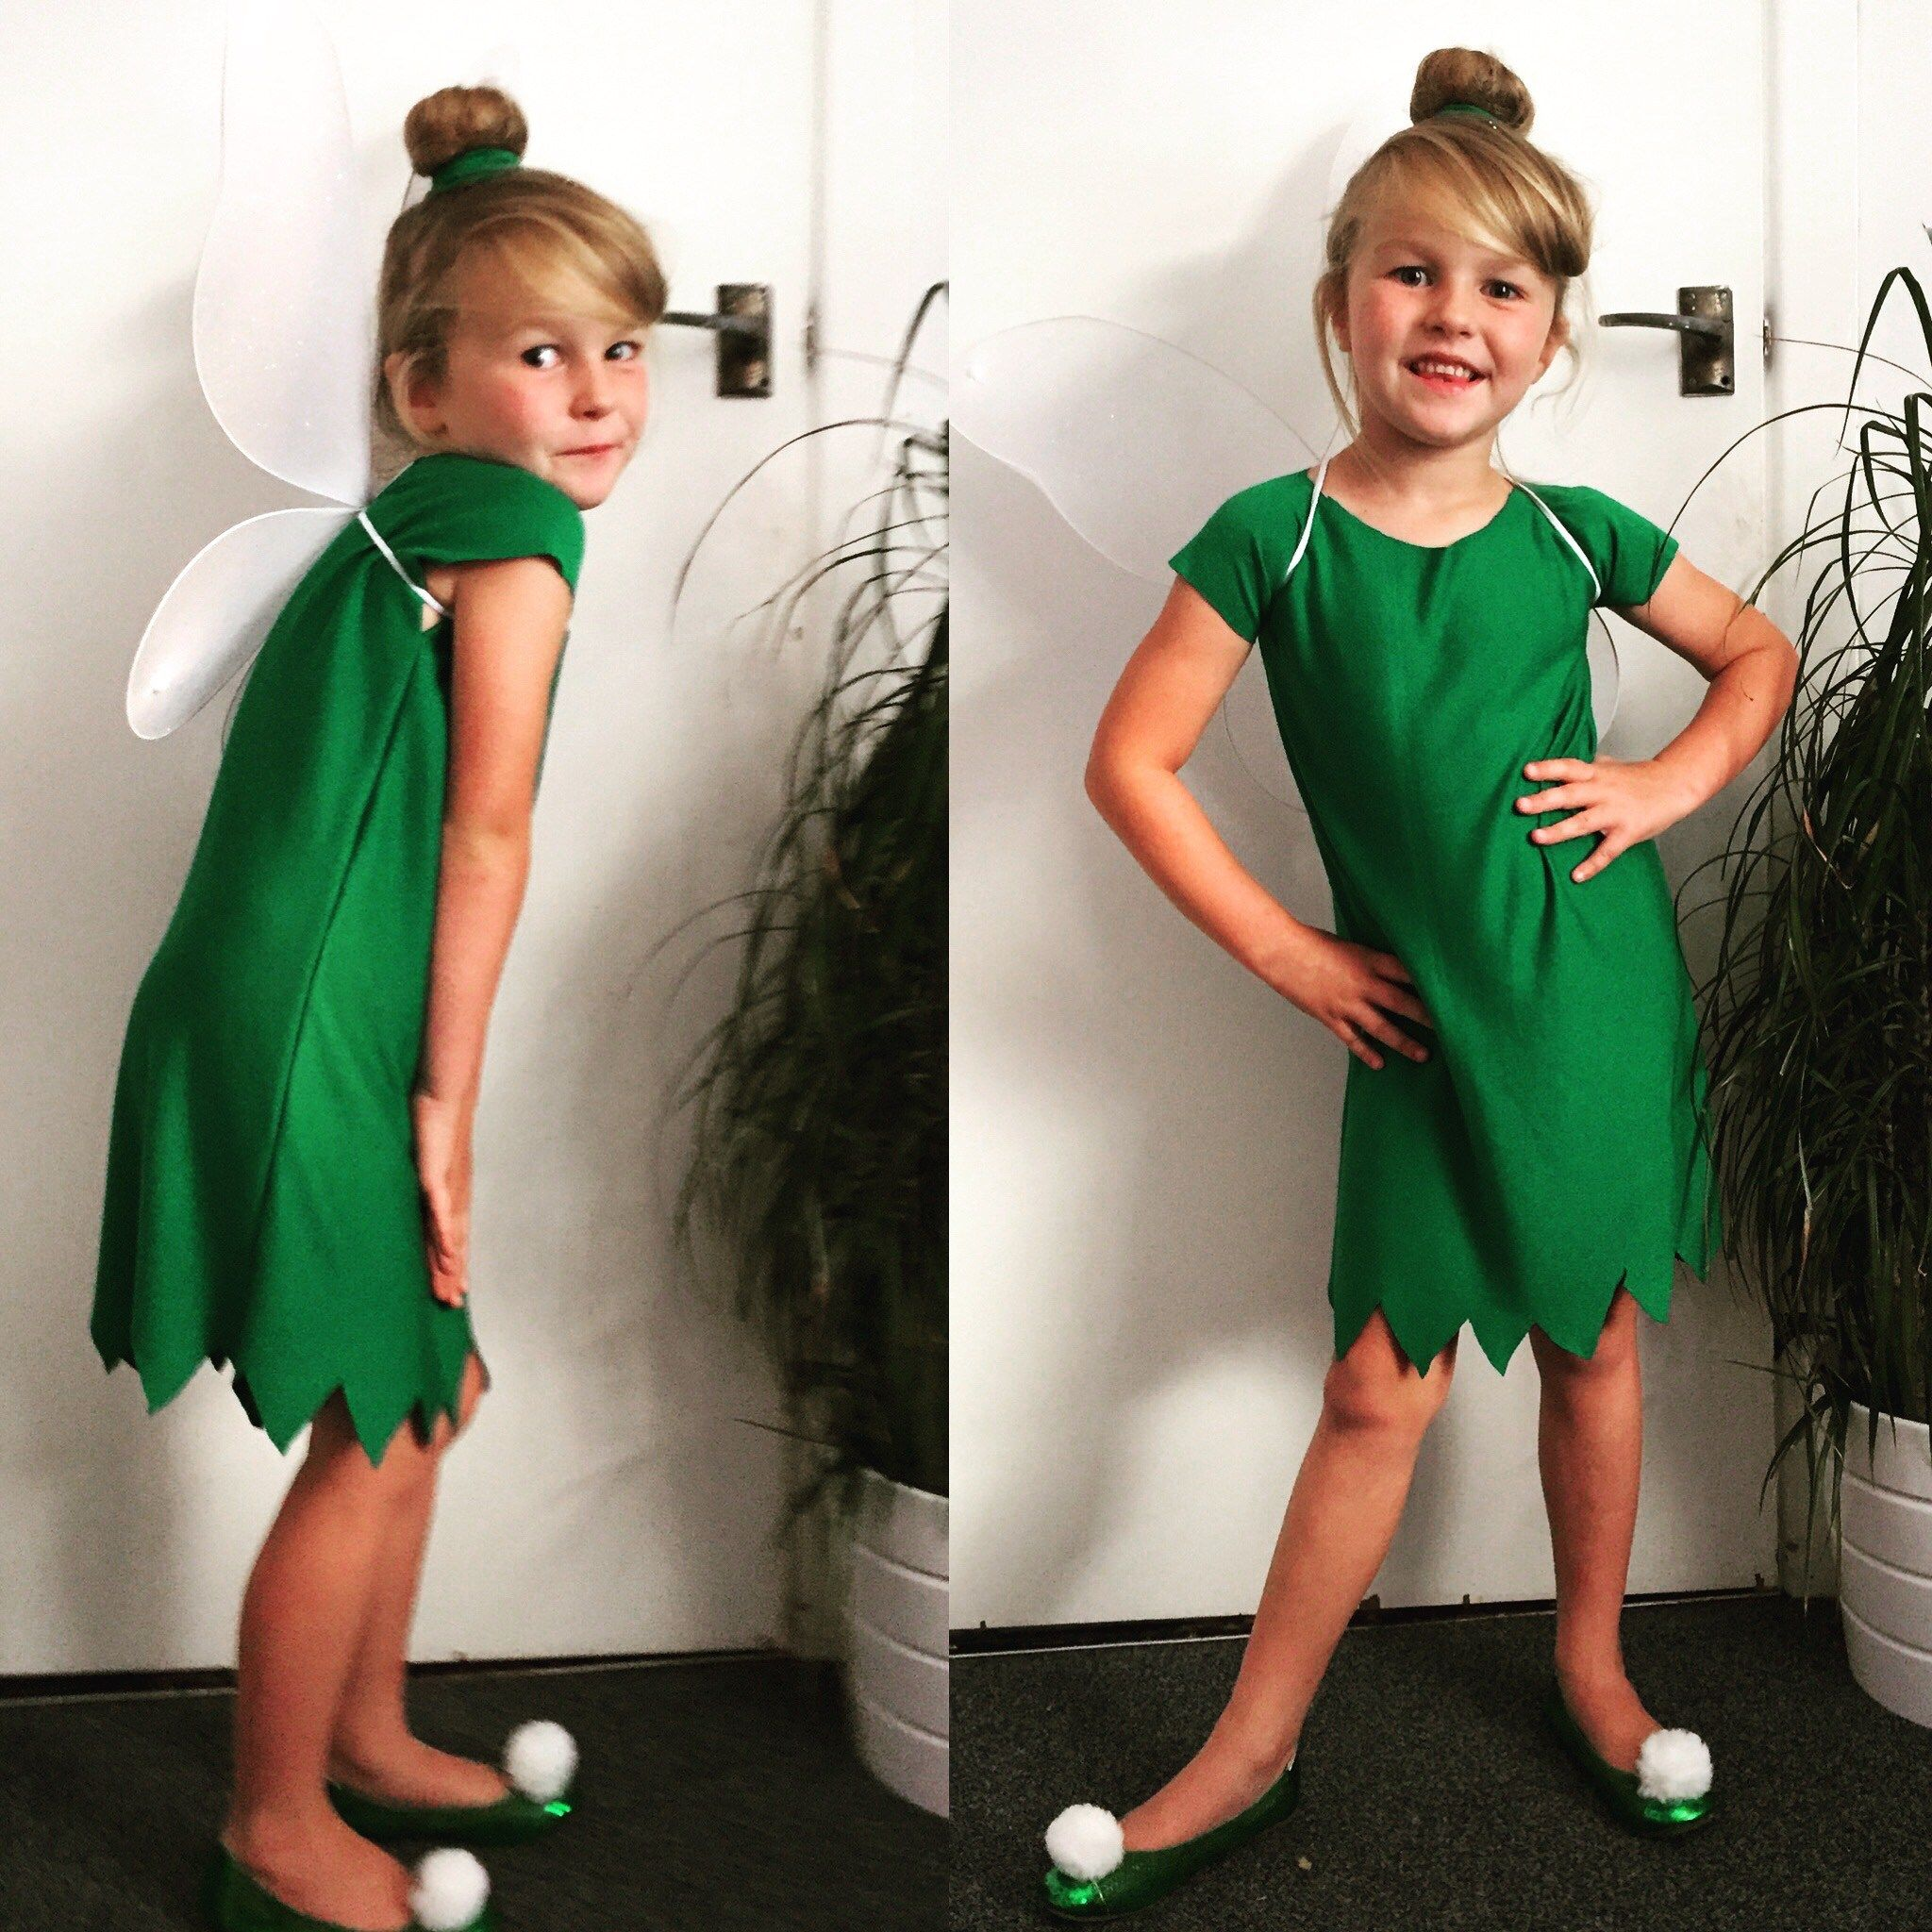 Make Your Own Easy Cheap Tinkerbell Costume Easy Kids Costumes Diy Costumes Kids Tinker Bell Costume [ 2048 x 2048 Pixel ]